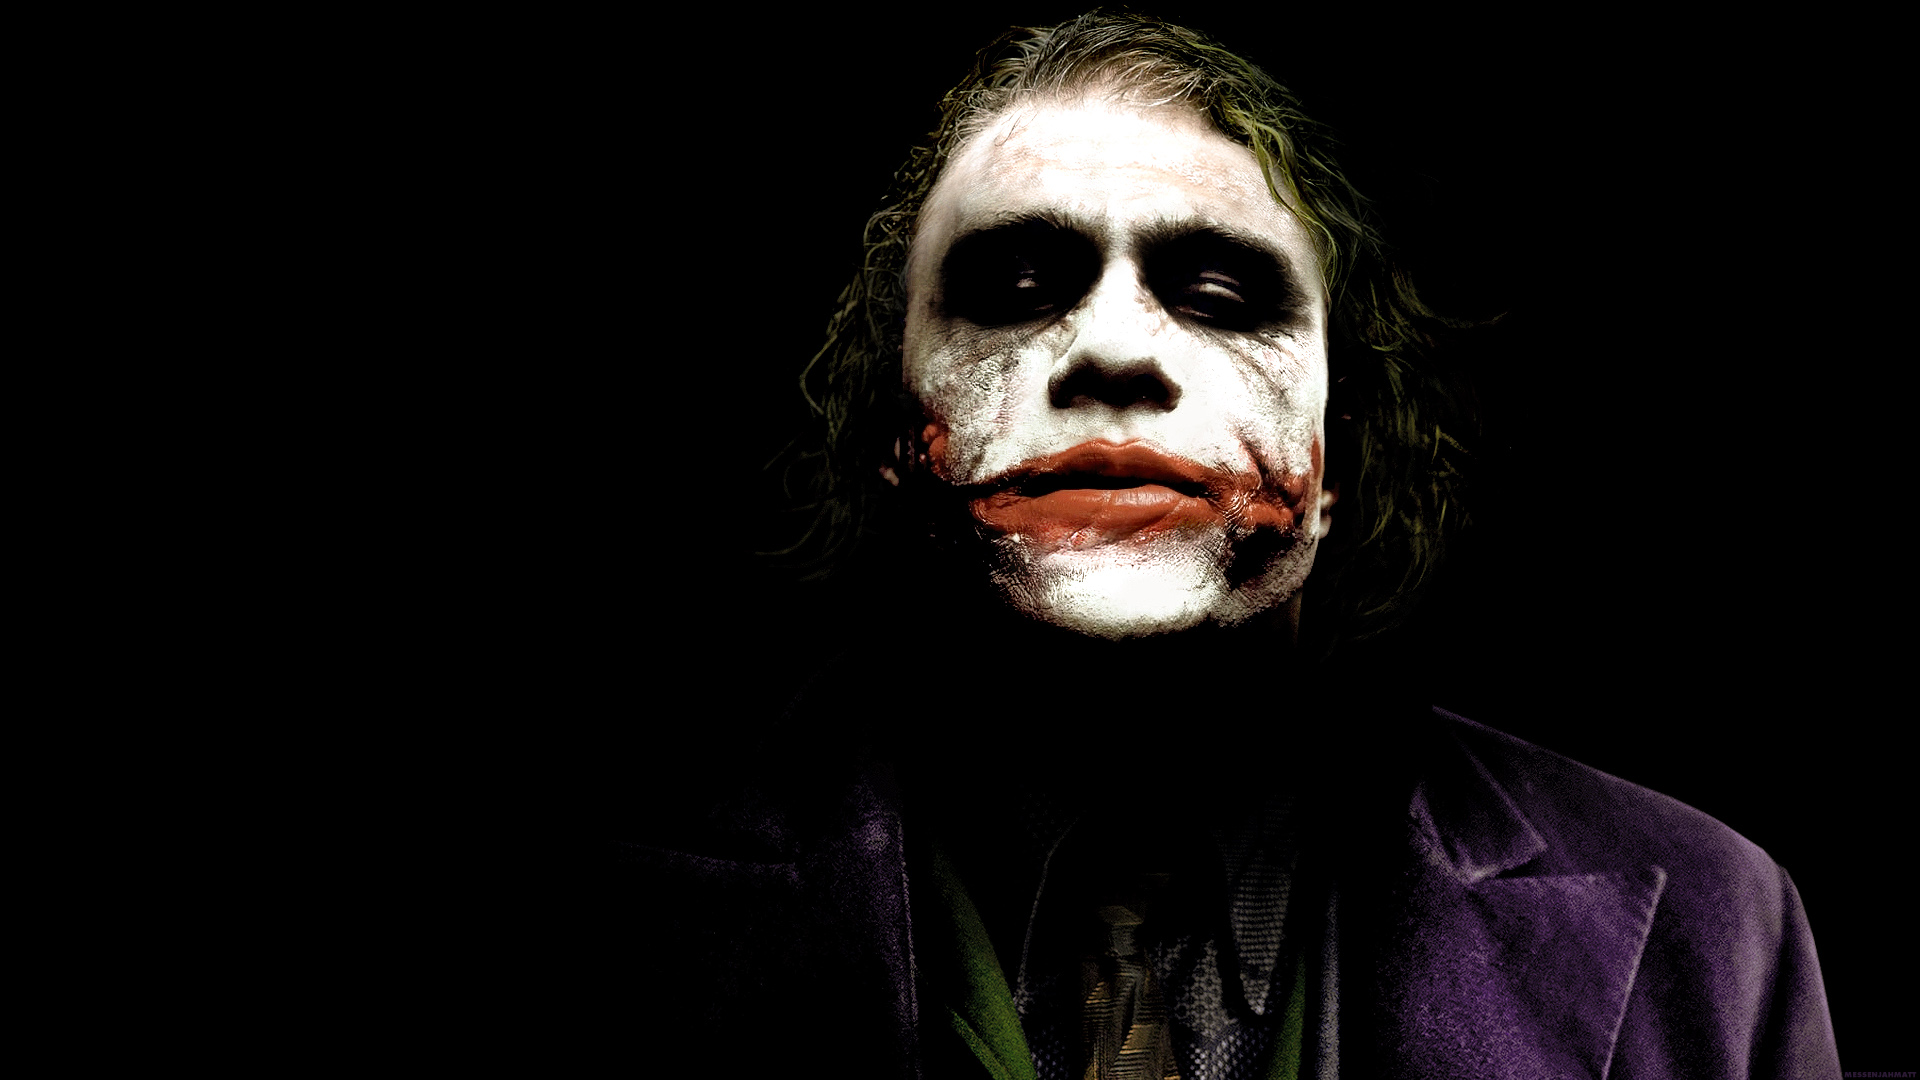 Joker Cover wallpaper 161655 1920x1080